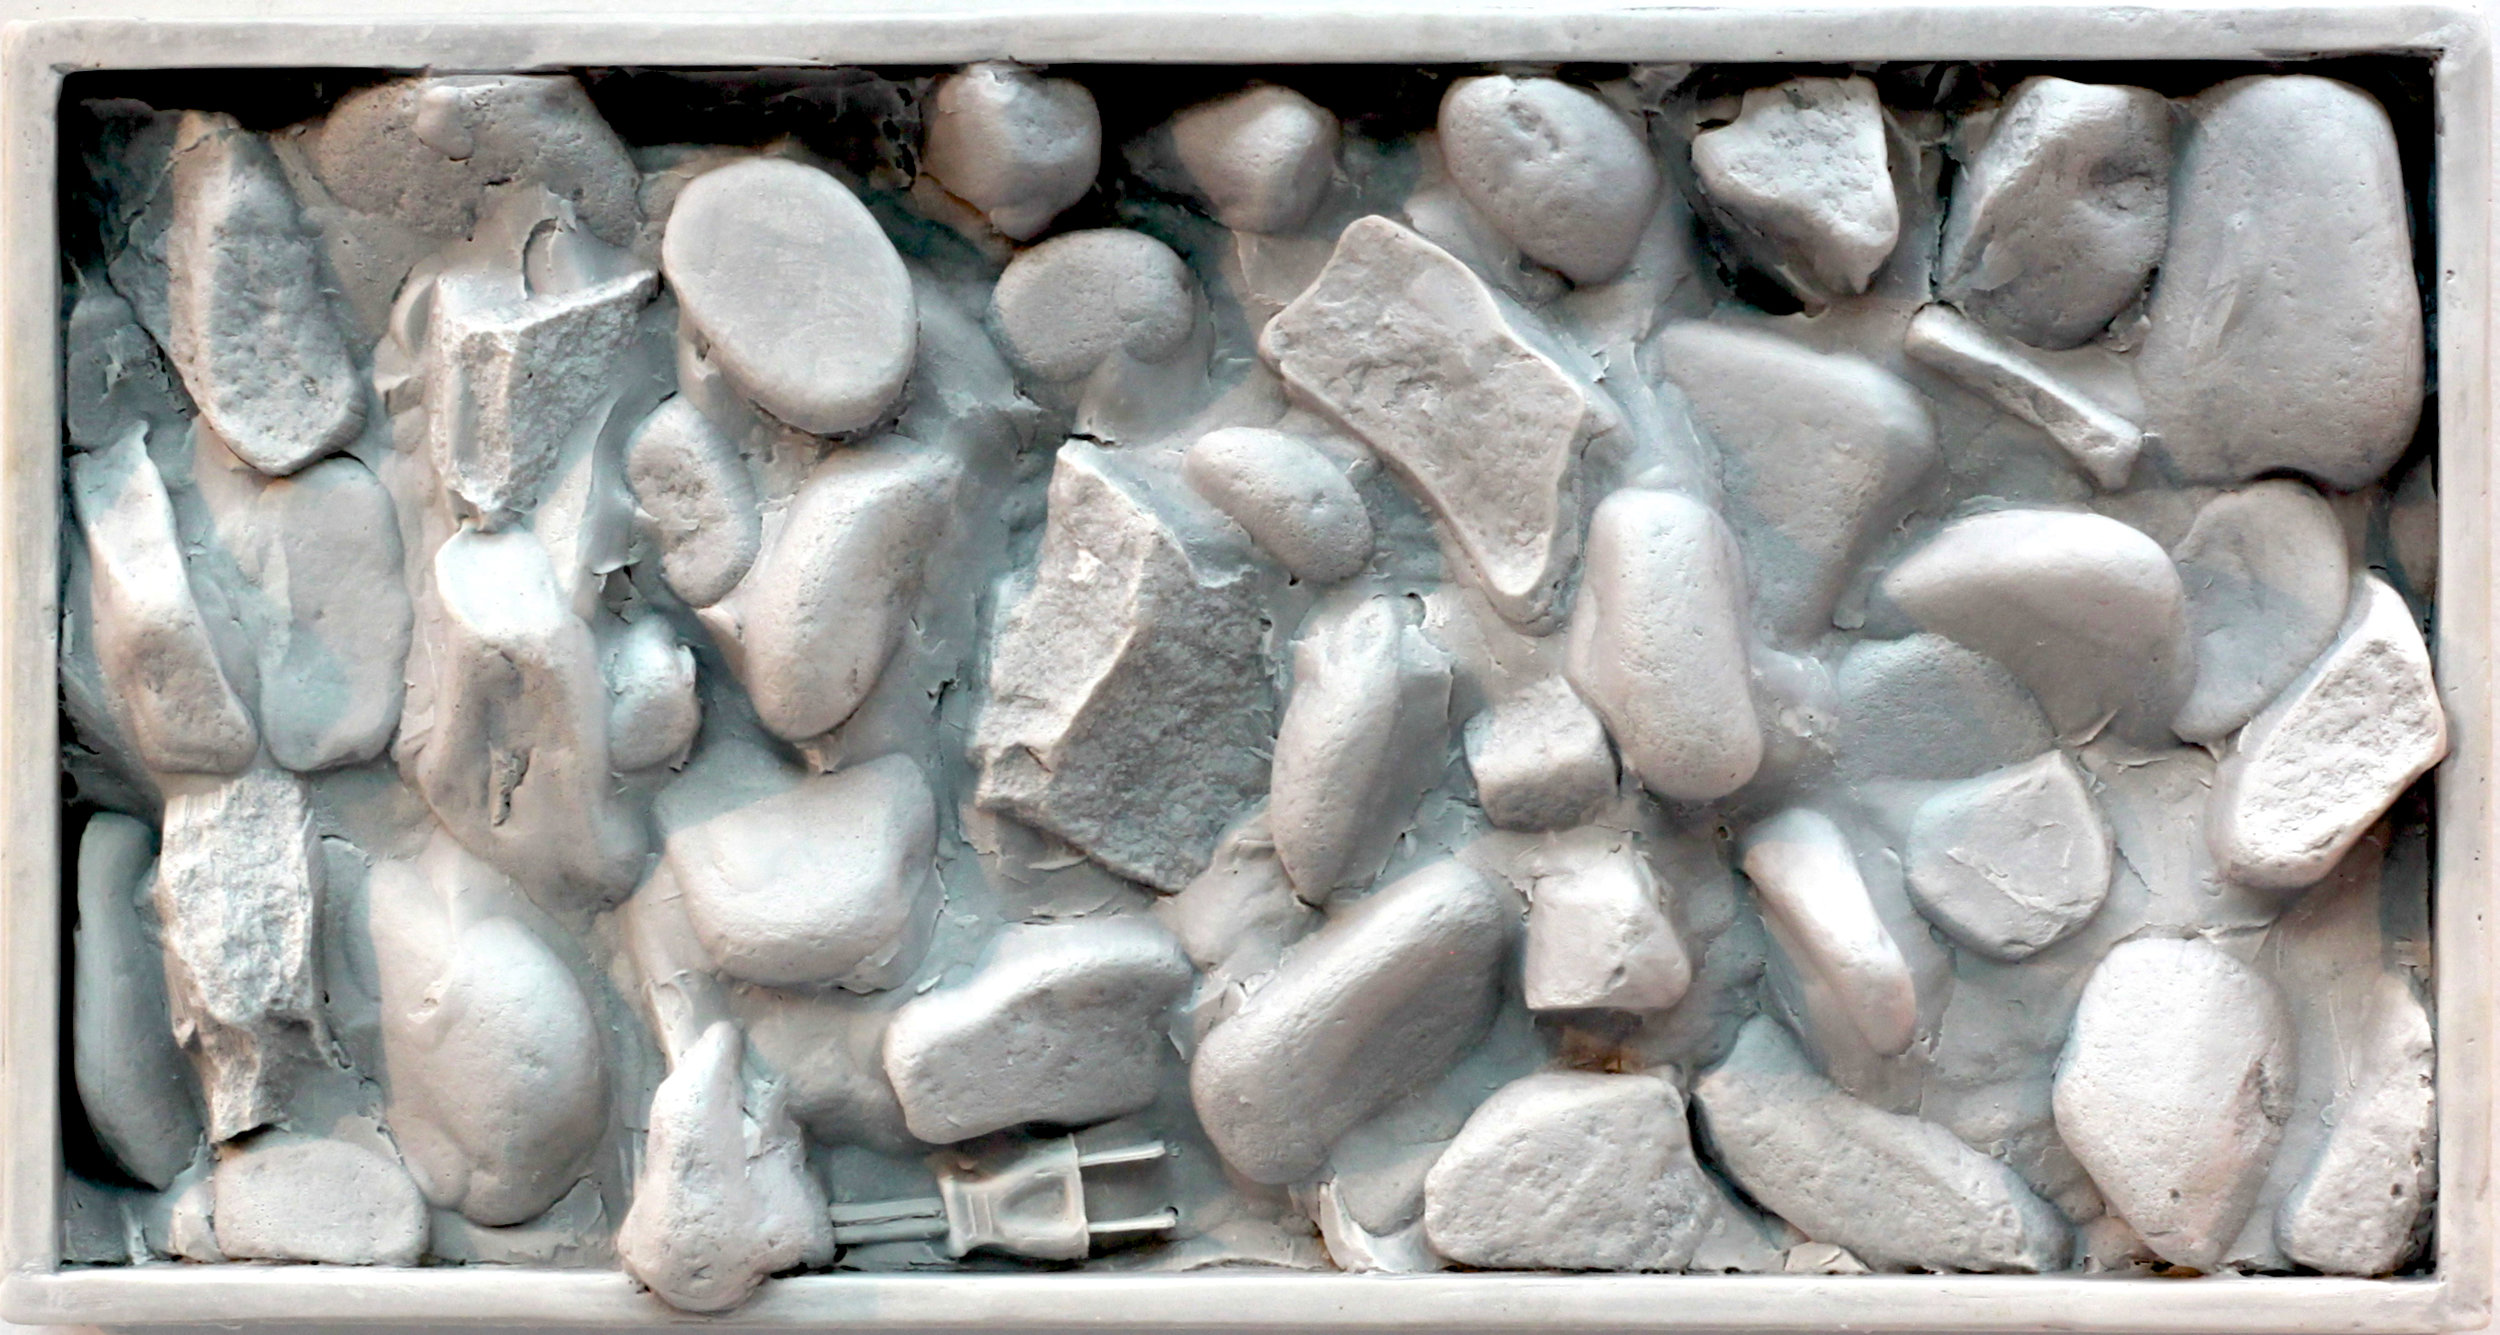 "Cscape #54 Rocks (Study) with plug, 9"" x 17"" x 3"", hydrocal and Carrara marble, 2017"